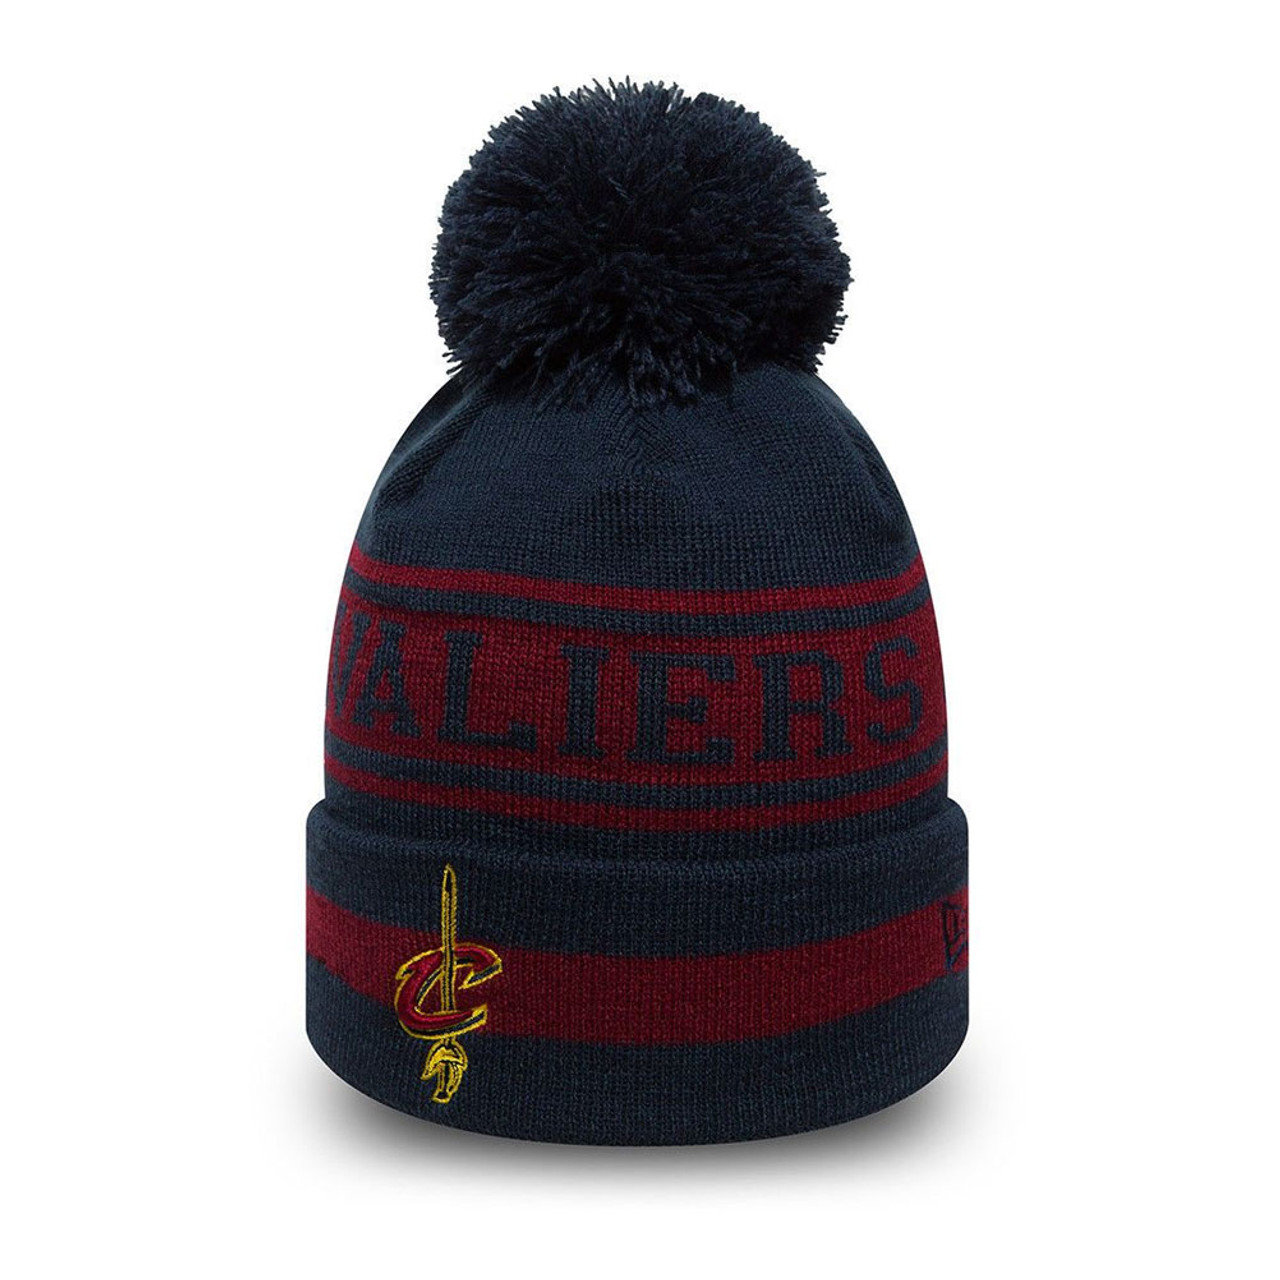 0252a76a6ab1b9 NEW ERA Cleveland cavaliers NBA Team Jake beanie hat [navy ...